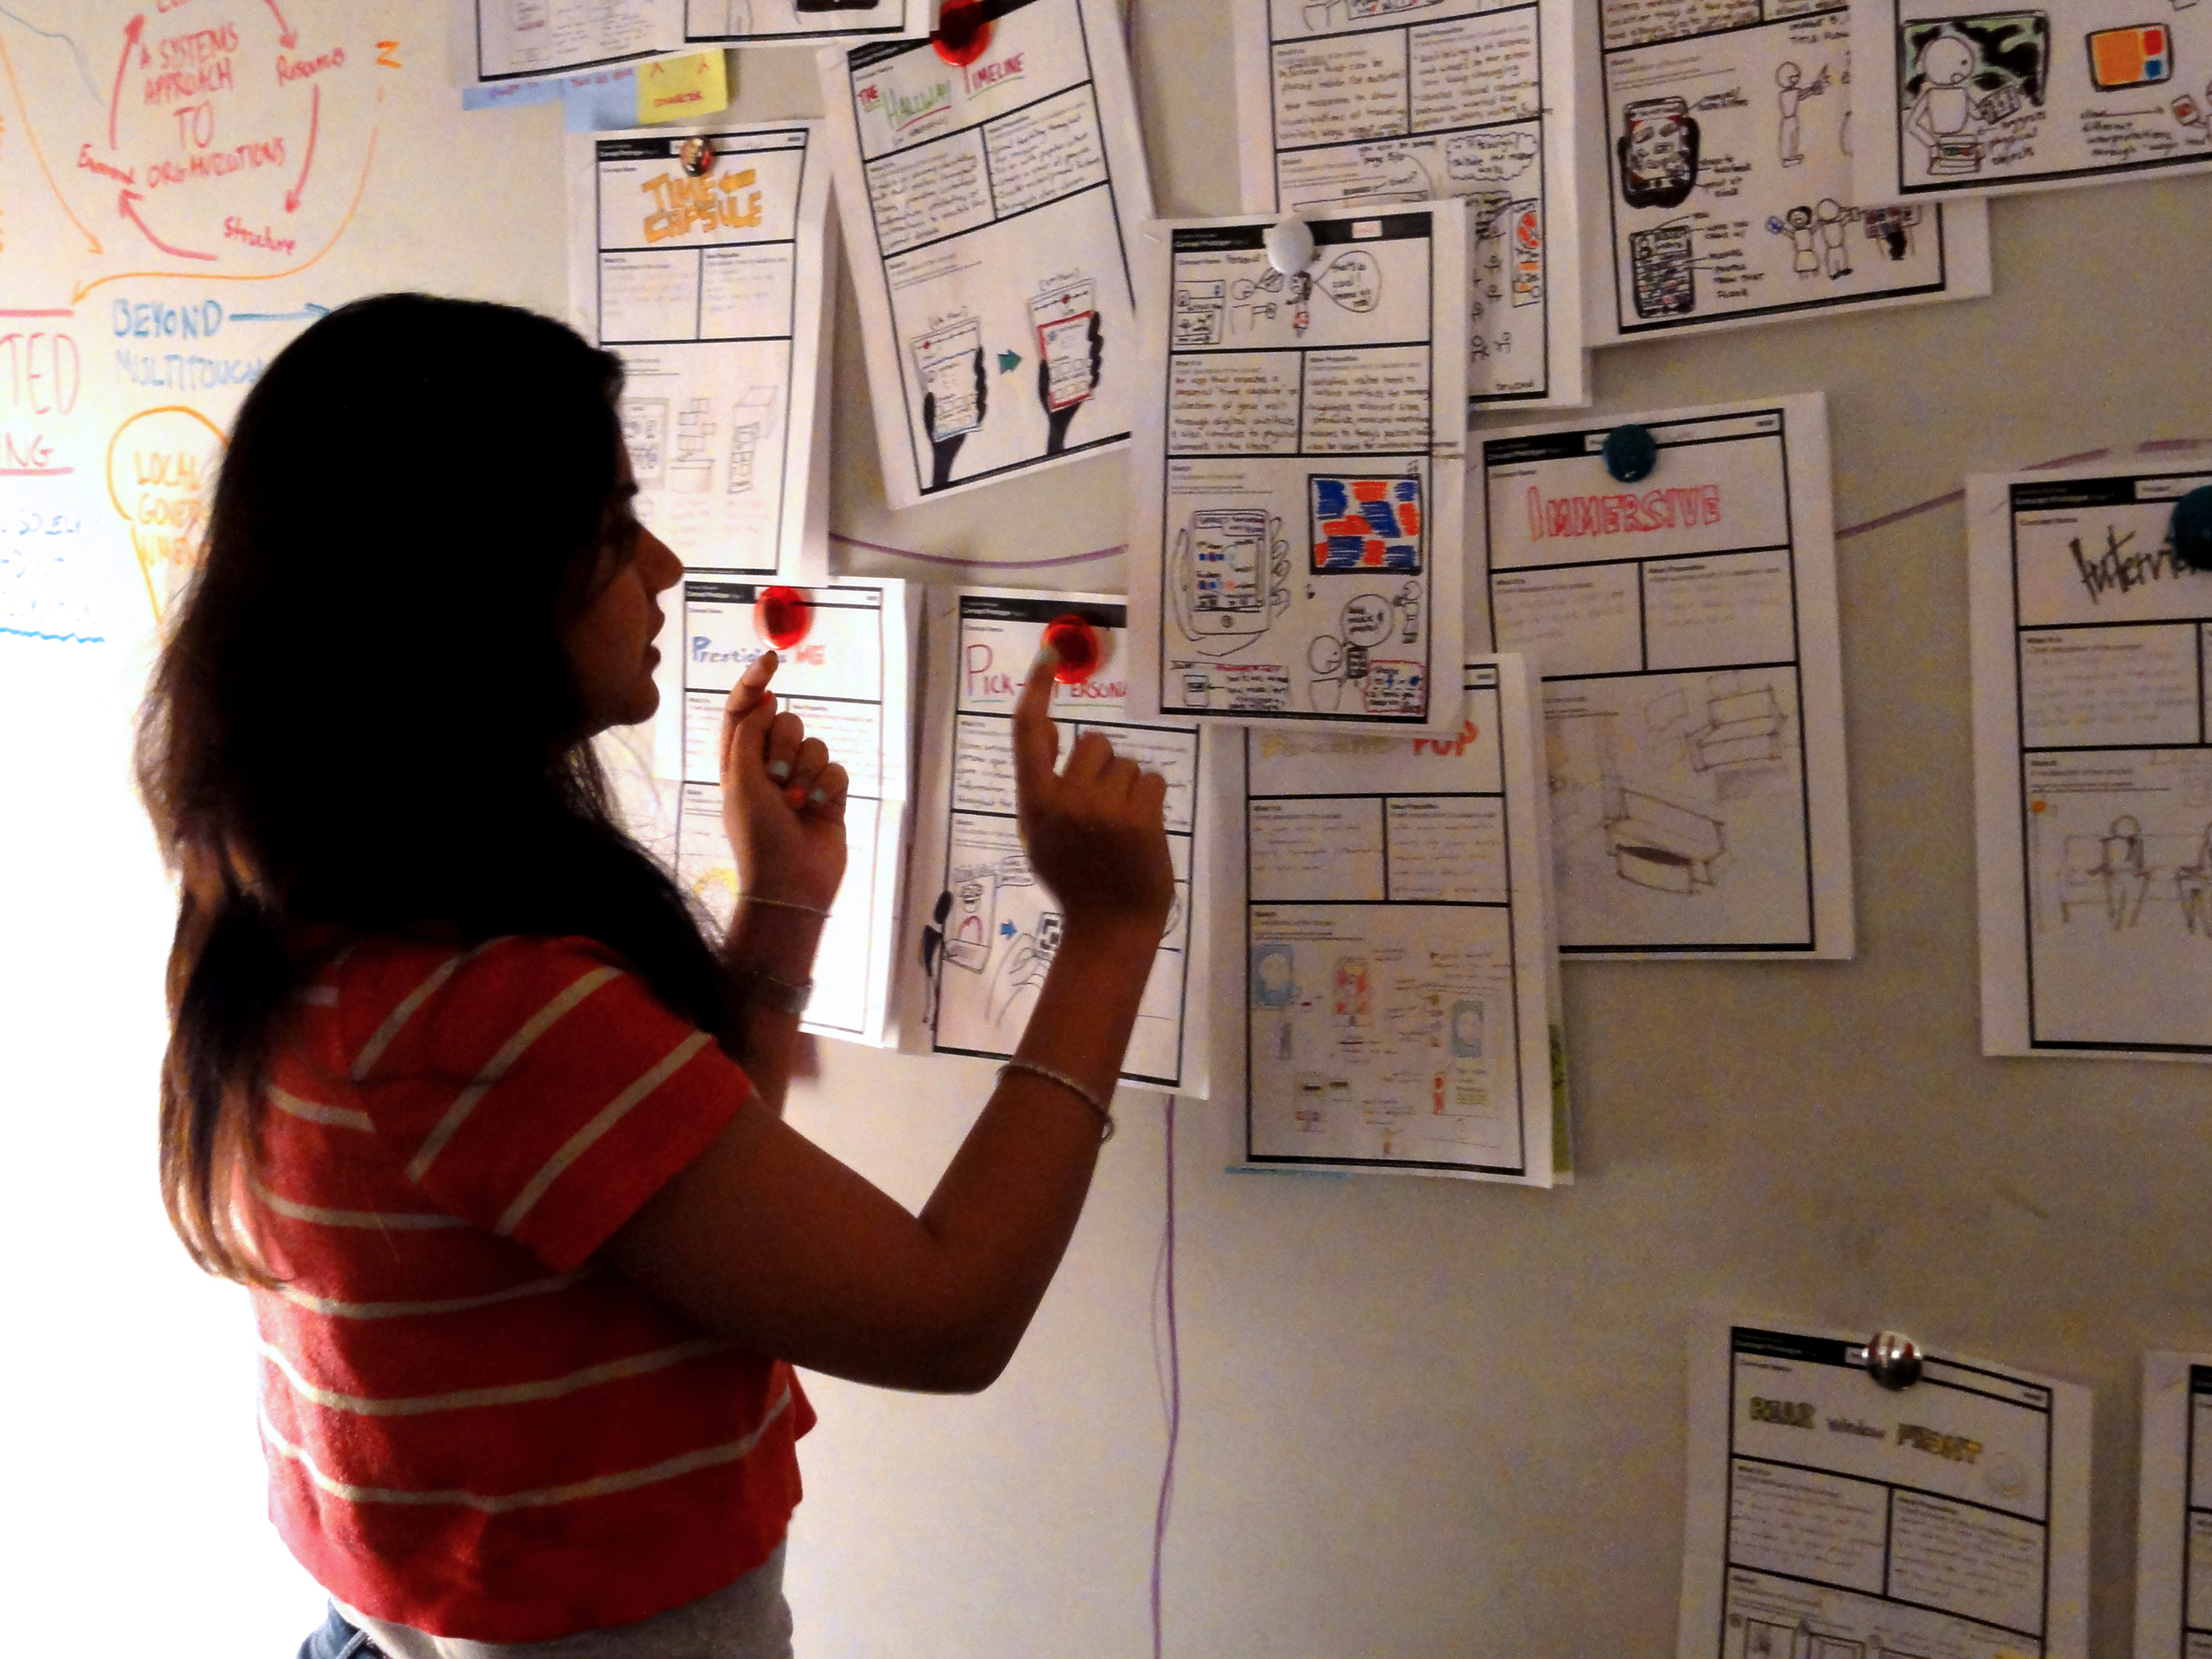 Quick idea sketches, coupled with brief value props, helped our team discuss and evaluate design concepts.